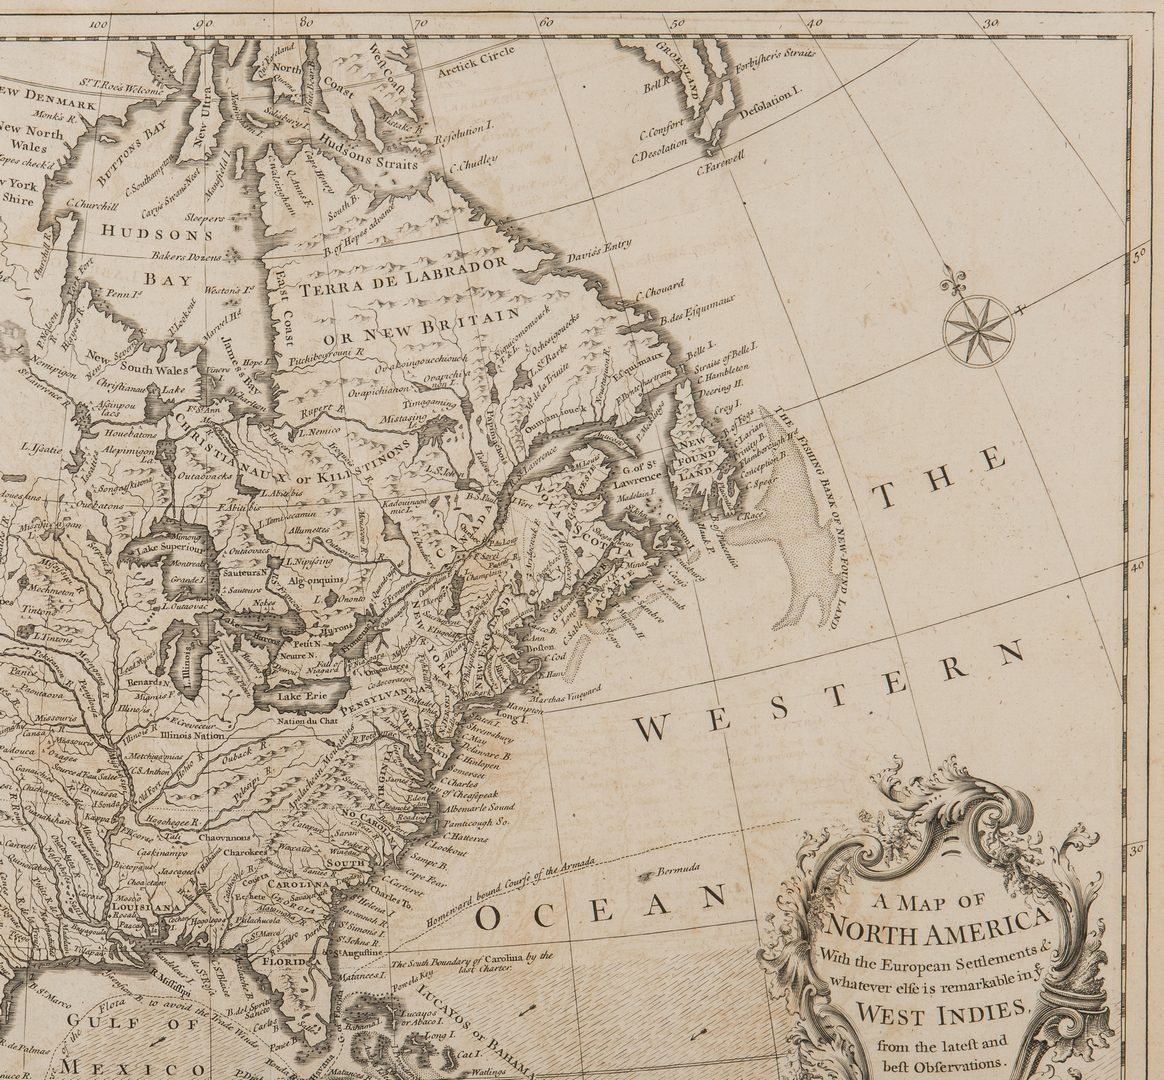 Lot 243: R.W. Seale, Map of North America, 1745